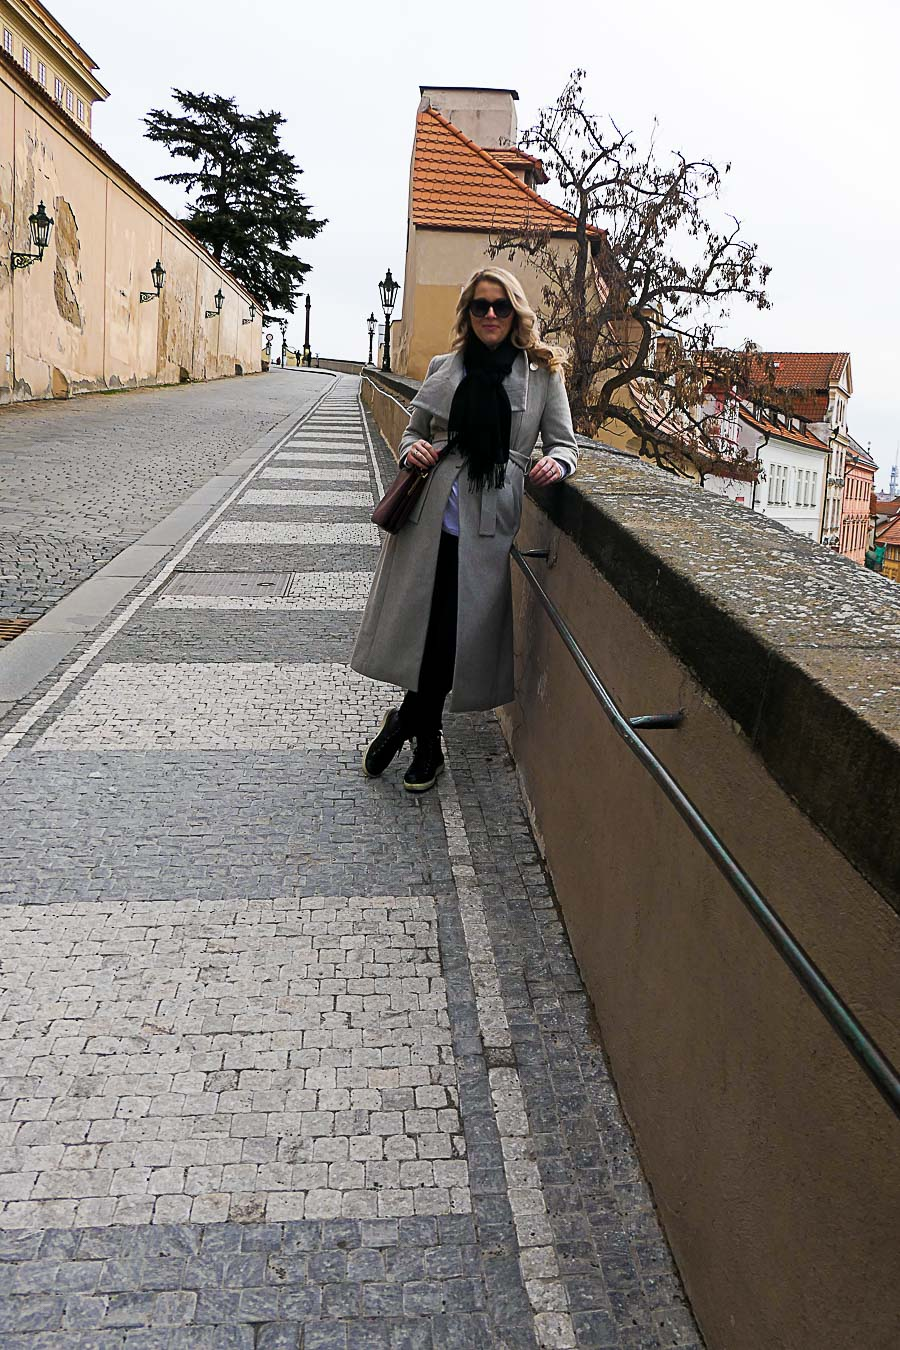 Prague Architecture Photos - What to Wear in Prague